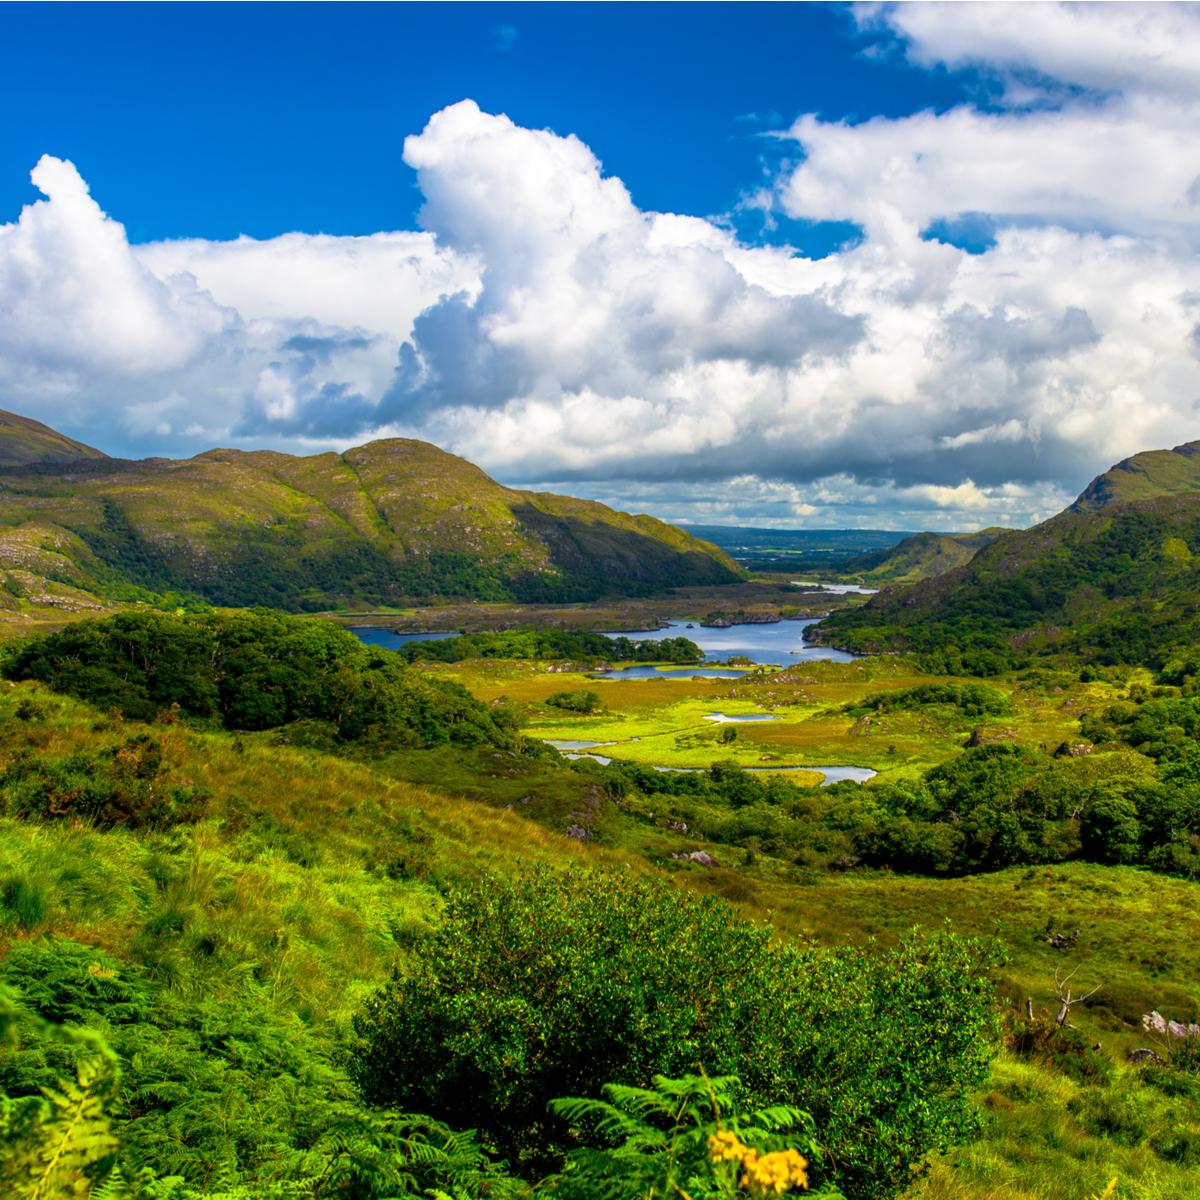 Landscape of Lady's view, Killarney National Park in Ireland